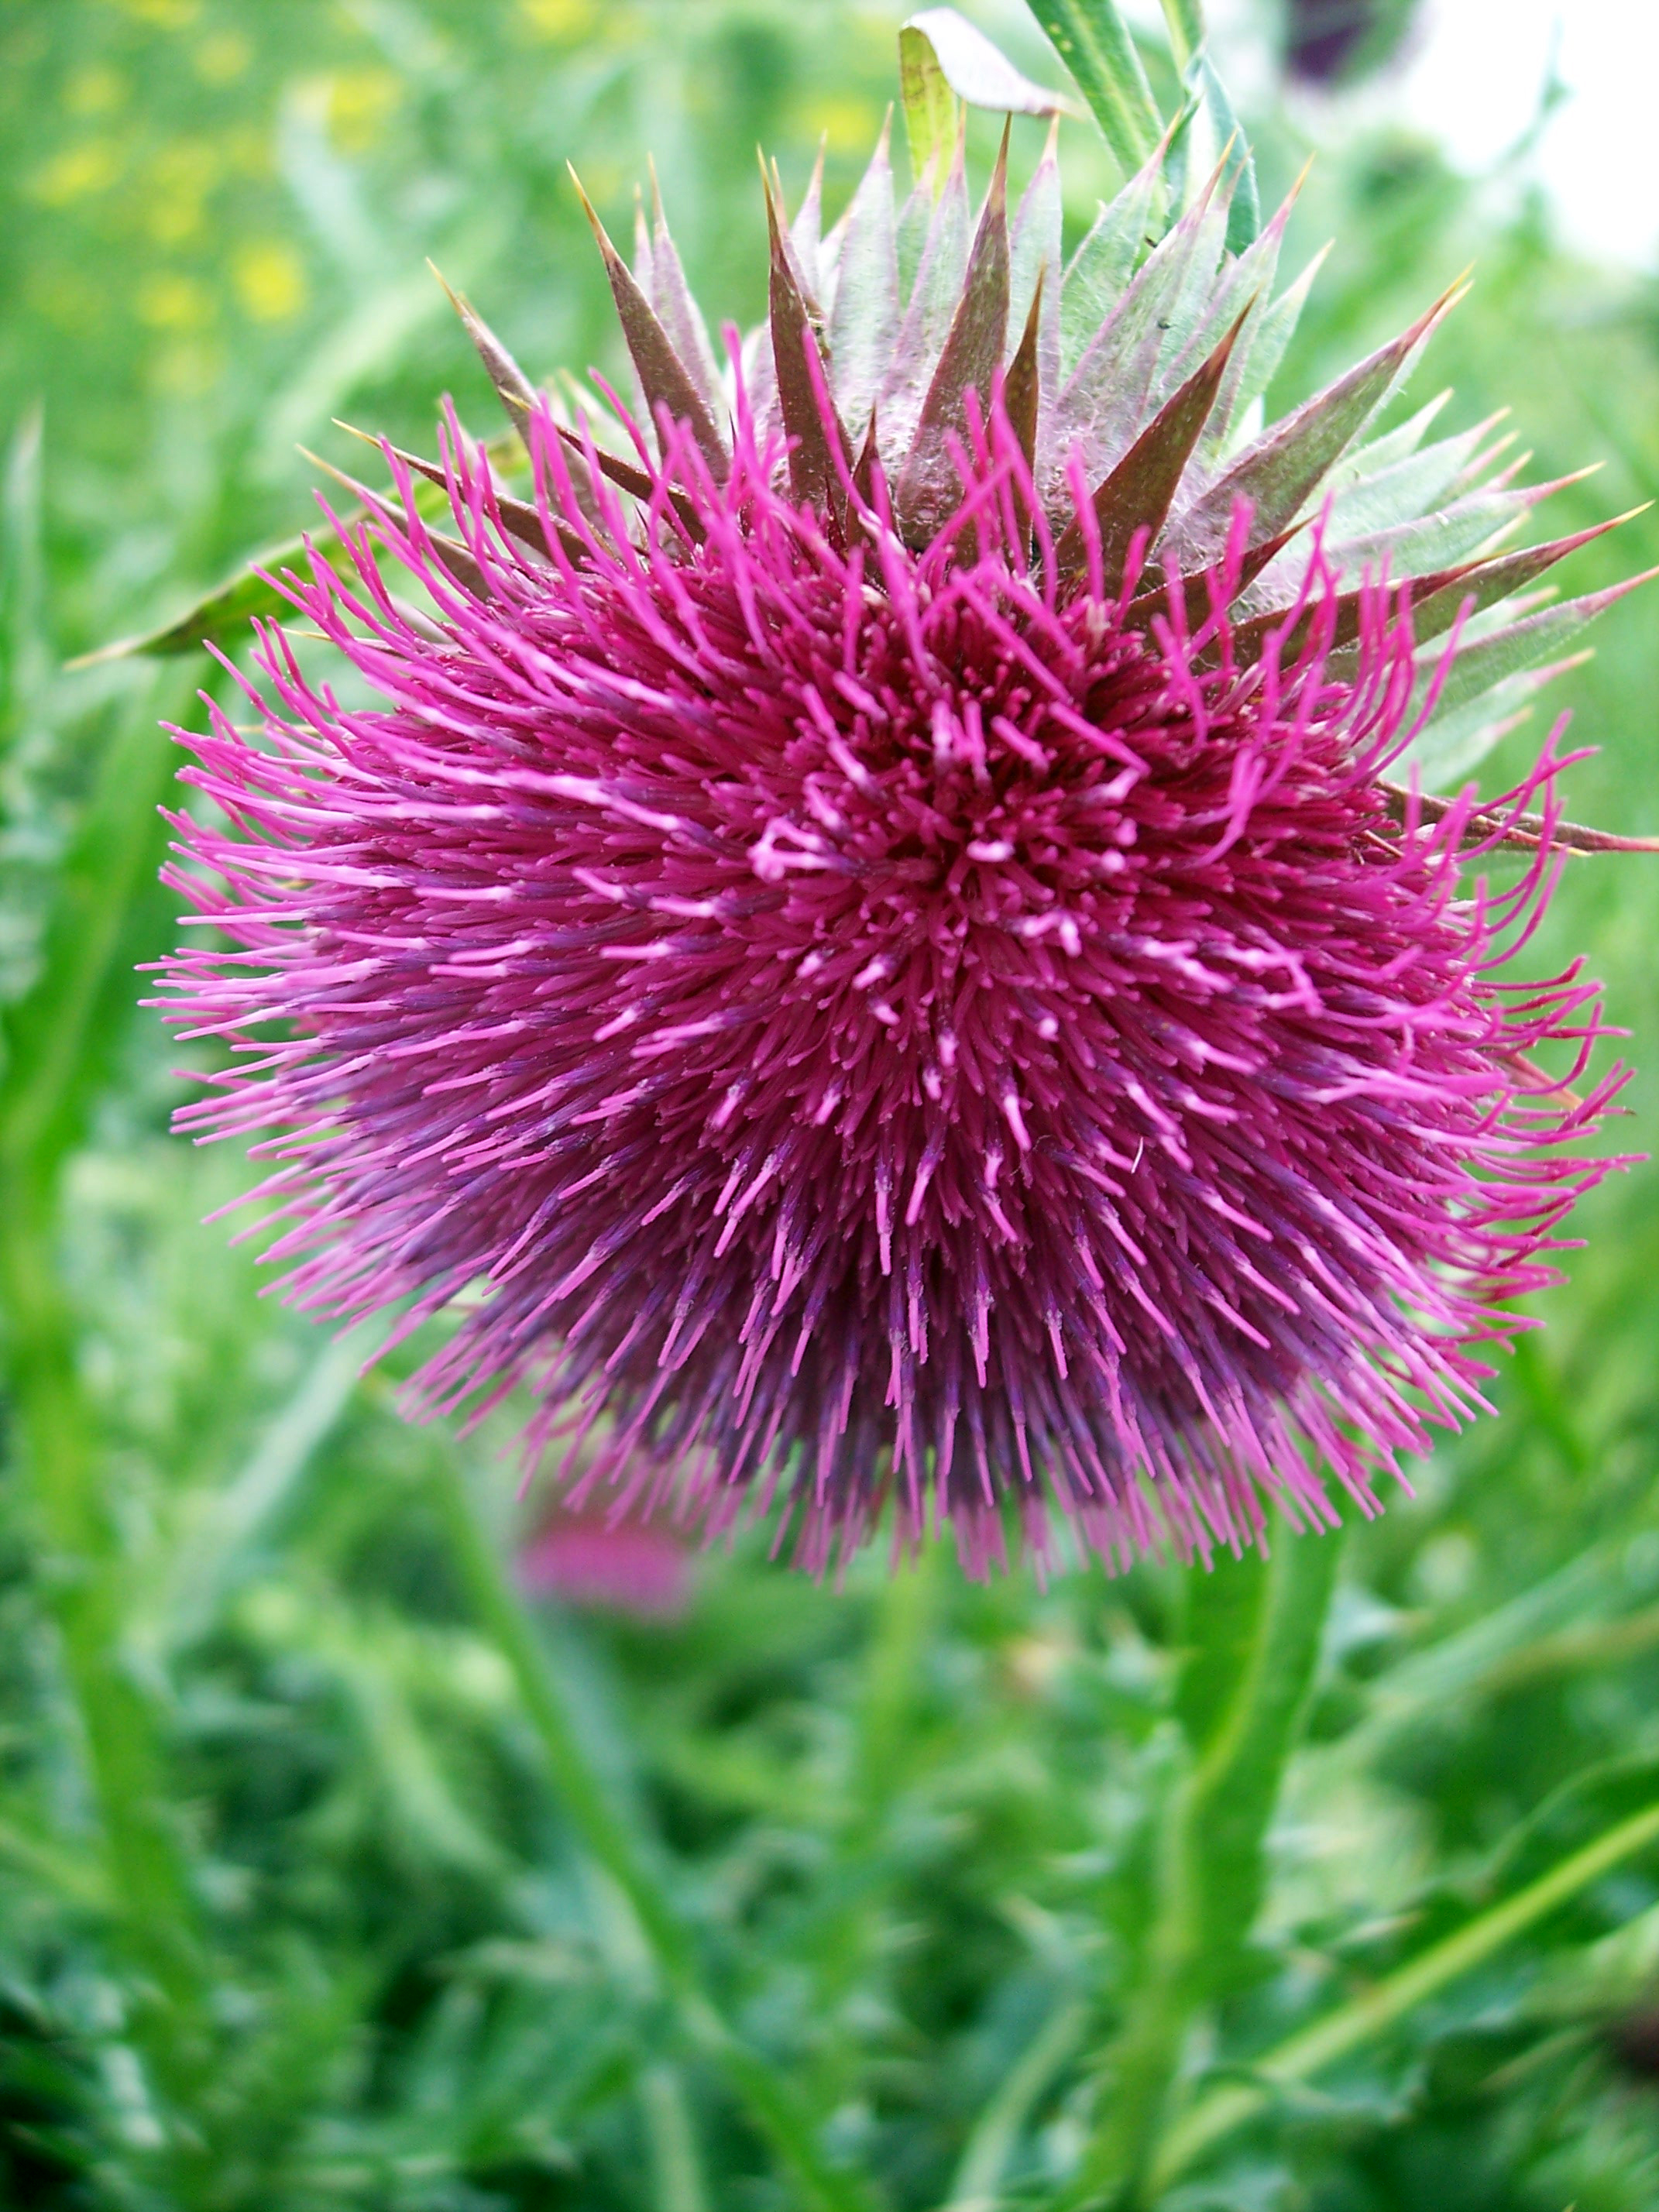 A relative of the welted thistle, the musk thistle has deeply dissected leaves and long spines.  The big drooping cup-shaped flowers are usually solitary and surrounded by spiny bracts, the outer ones being bent backwards. It flowers June to August and is common on damp grassy land.  Picture taken a...